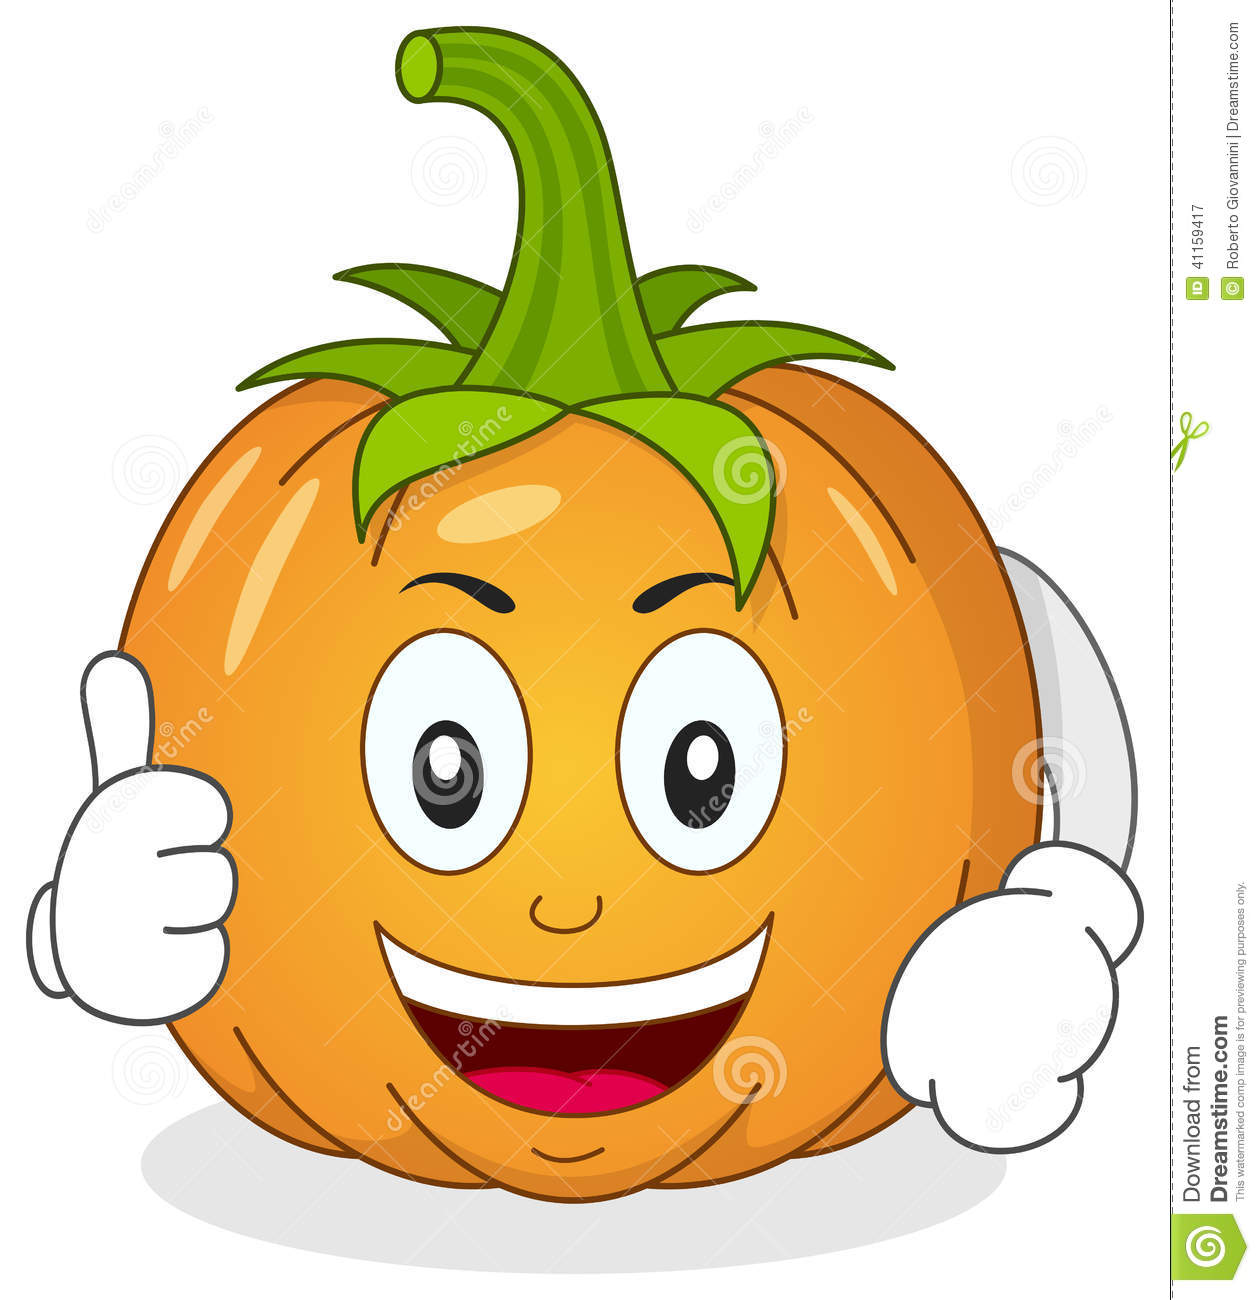 Funny pumpkin character with thumbs up stock vector for Funny pumpkin drawings